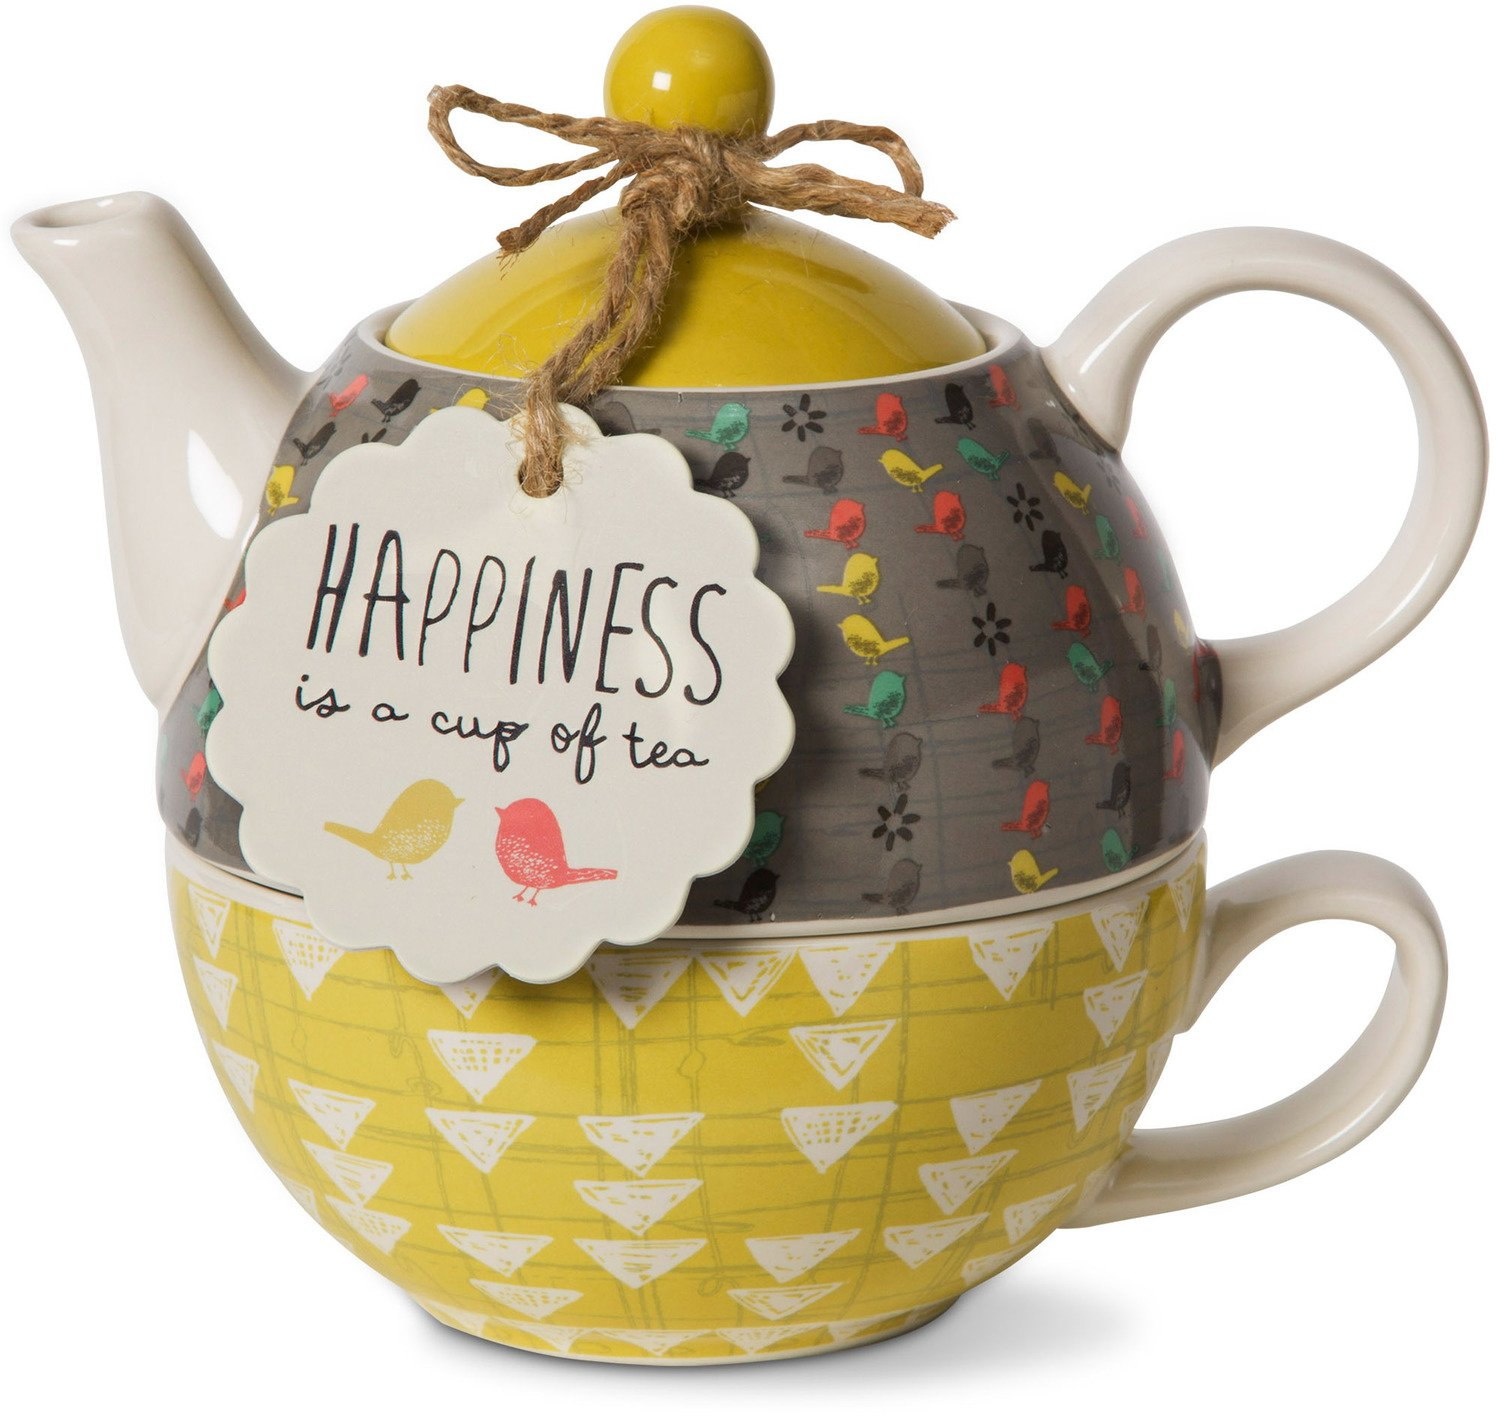 Bloom Pavilion Gift Company 74070 Happiness Ceramic Tea for One, 15 Oz, Multicolor